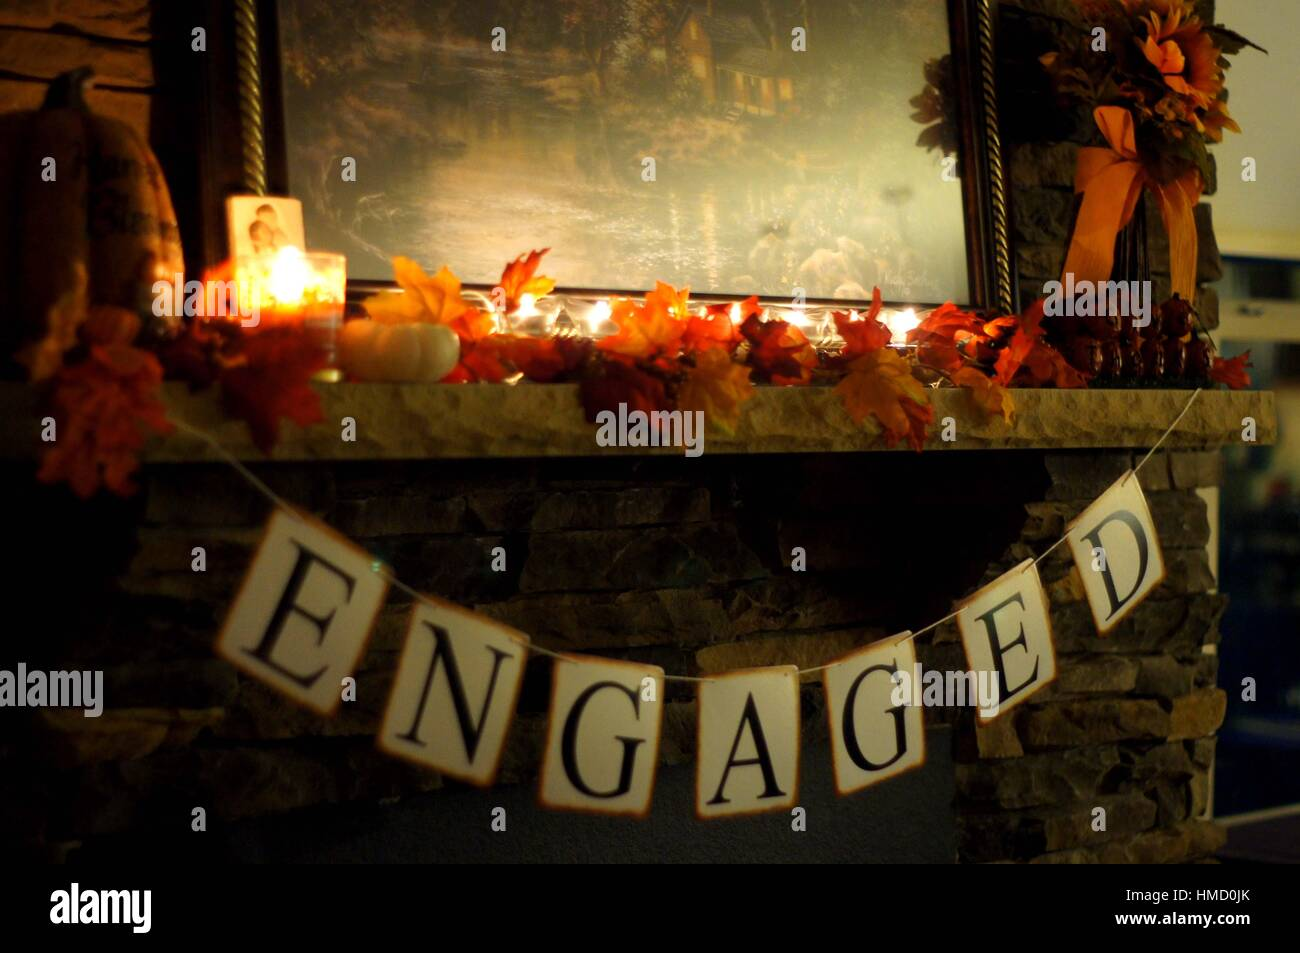 Engagement banner on mantle with candle light - Stock Image